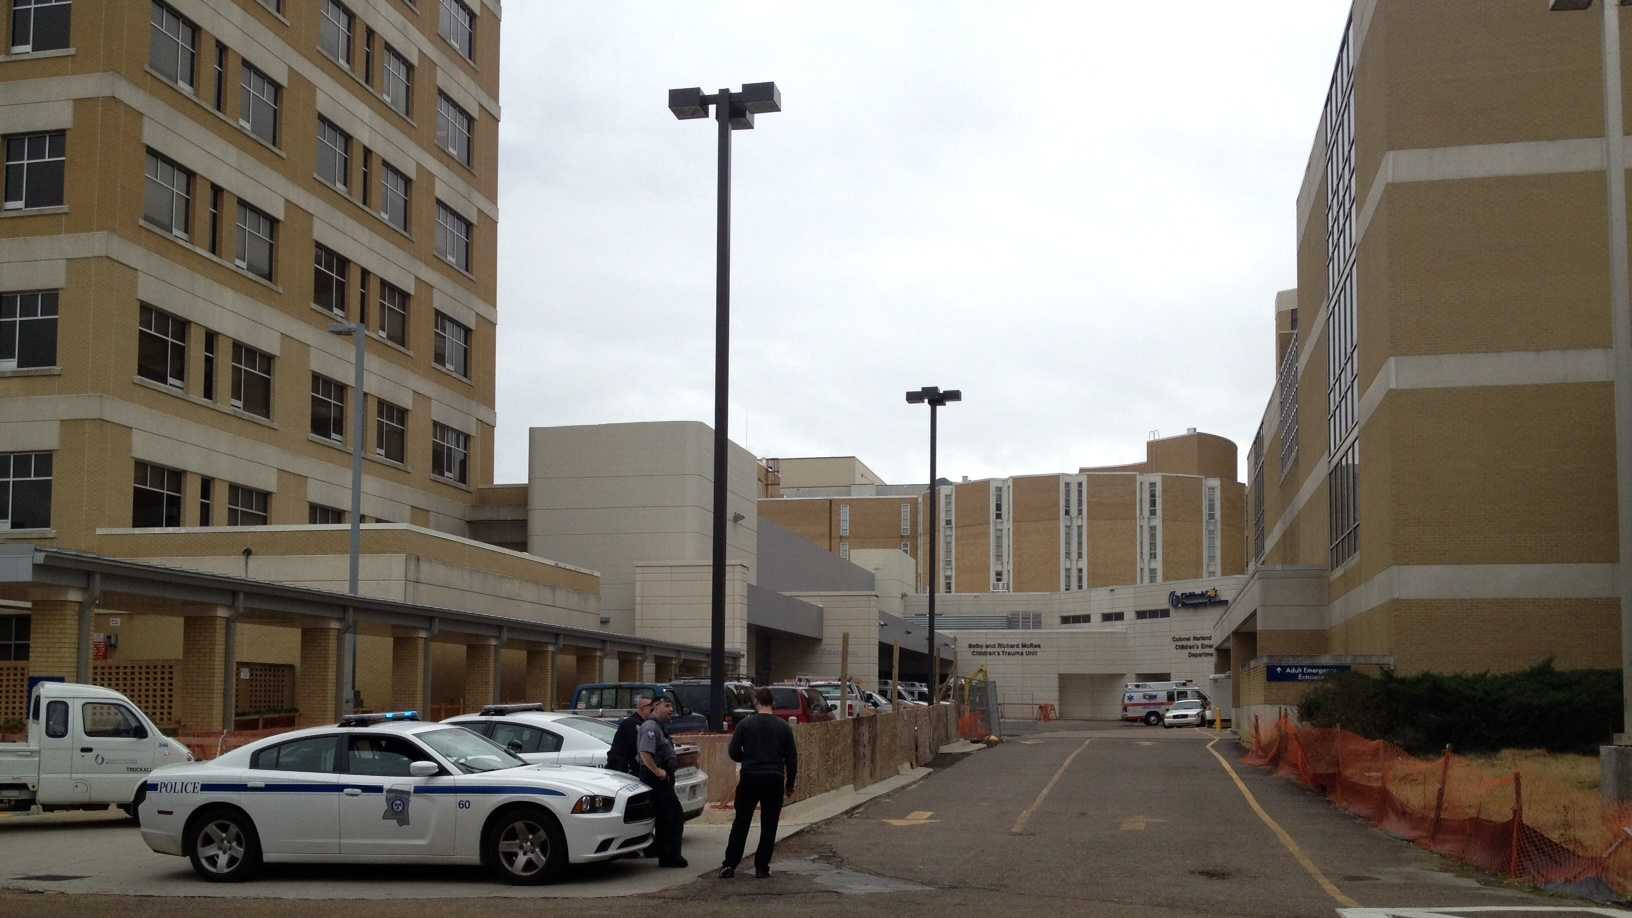 Officers were at UMC Tuesday, where a Brandon officer was being treated for injuries he suffered in a motorcycle crash.